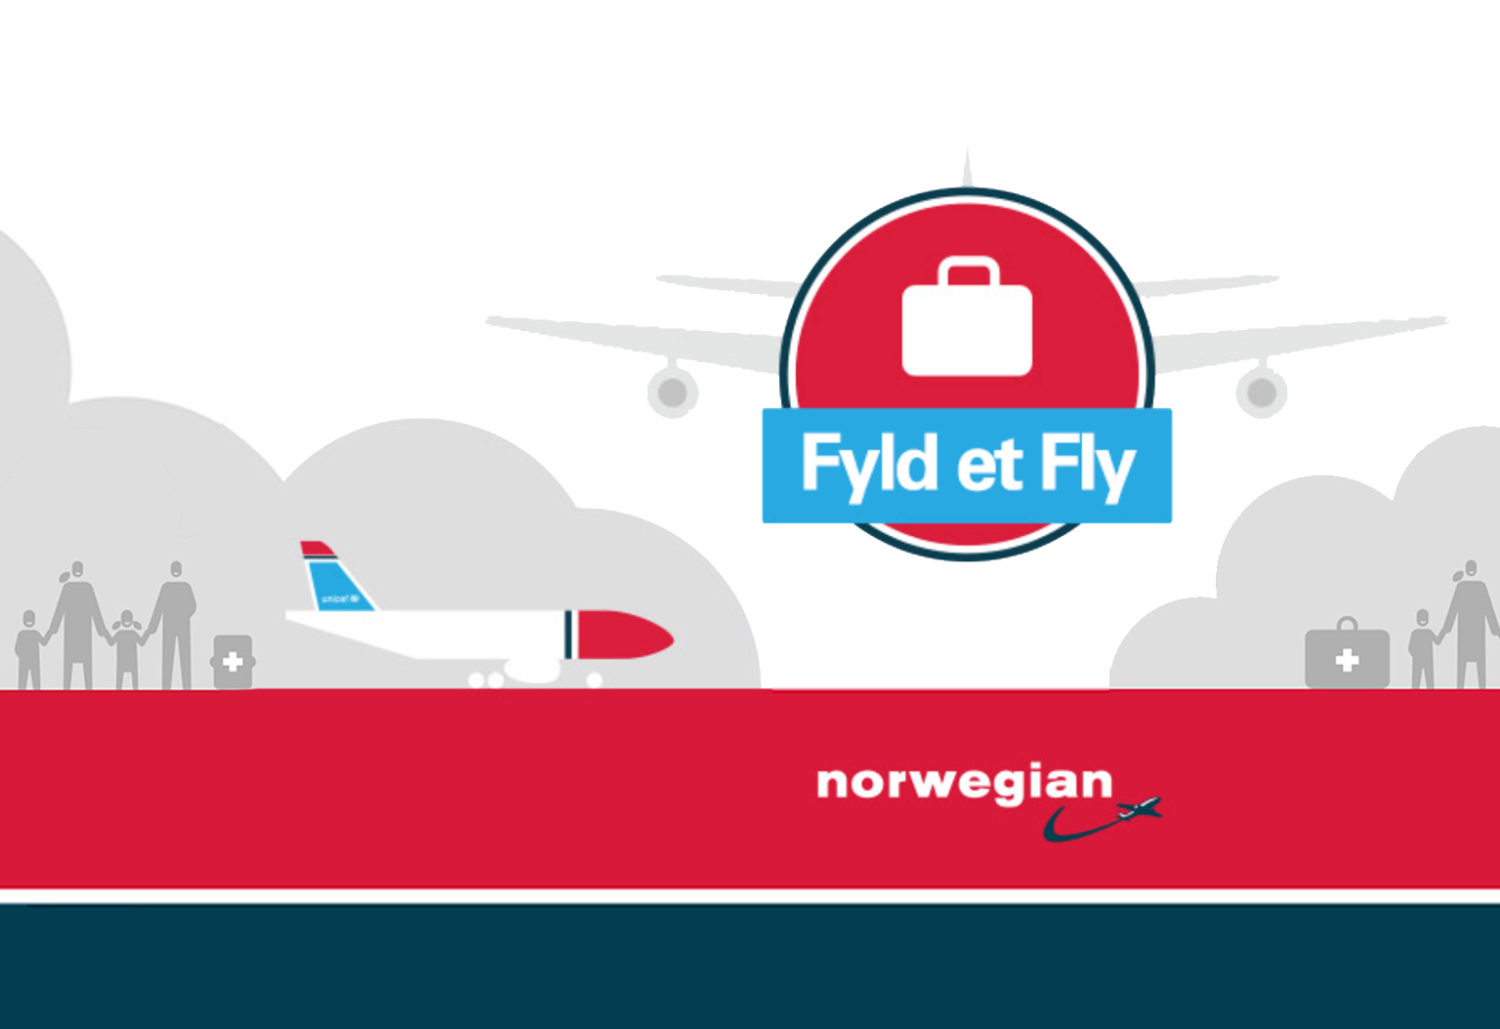 Fyld et fly Norwegian Tchad